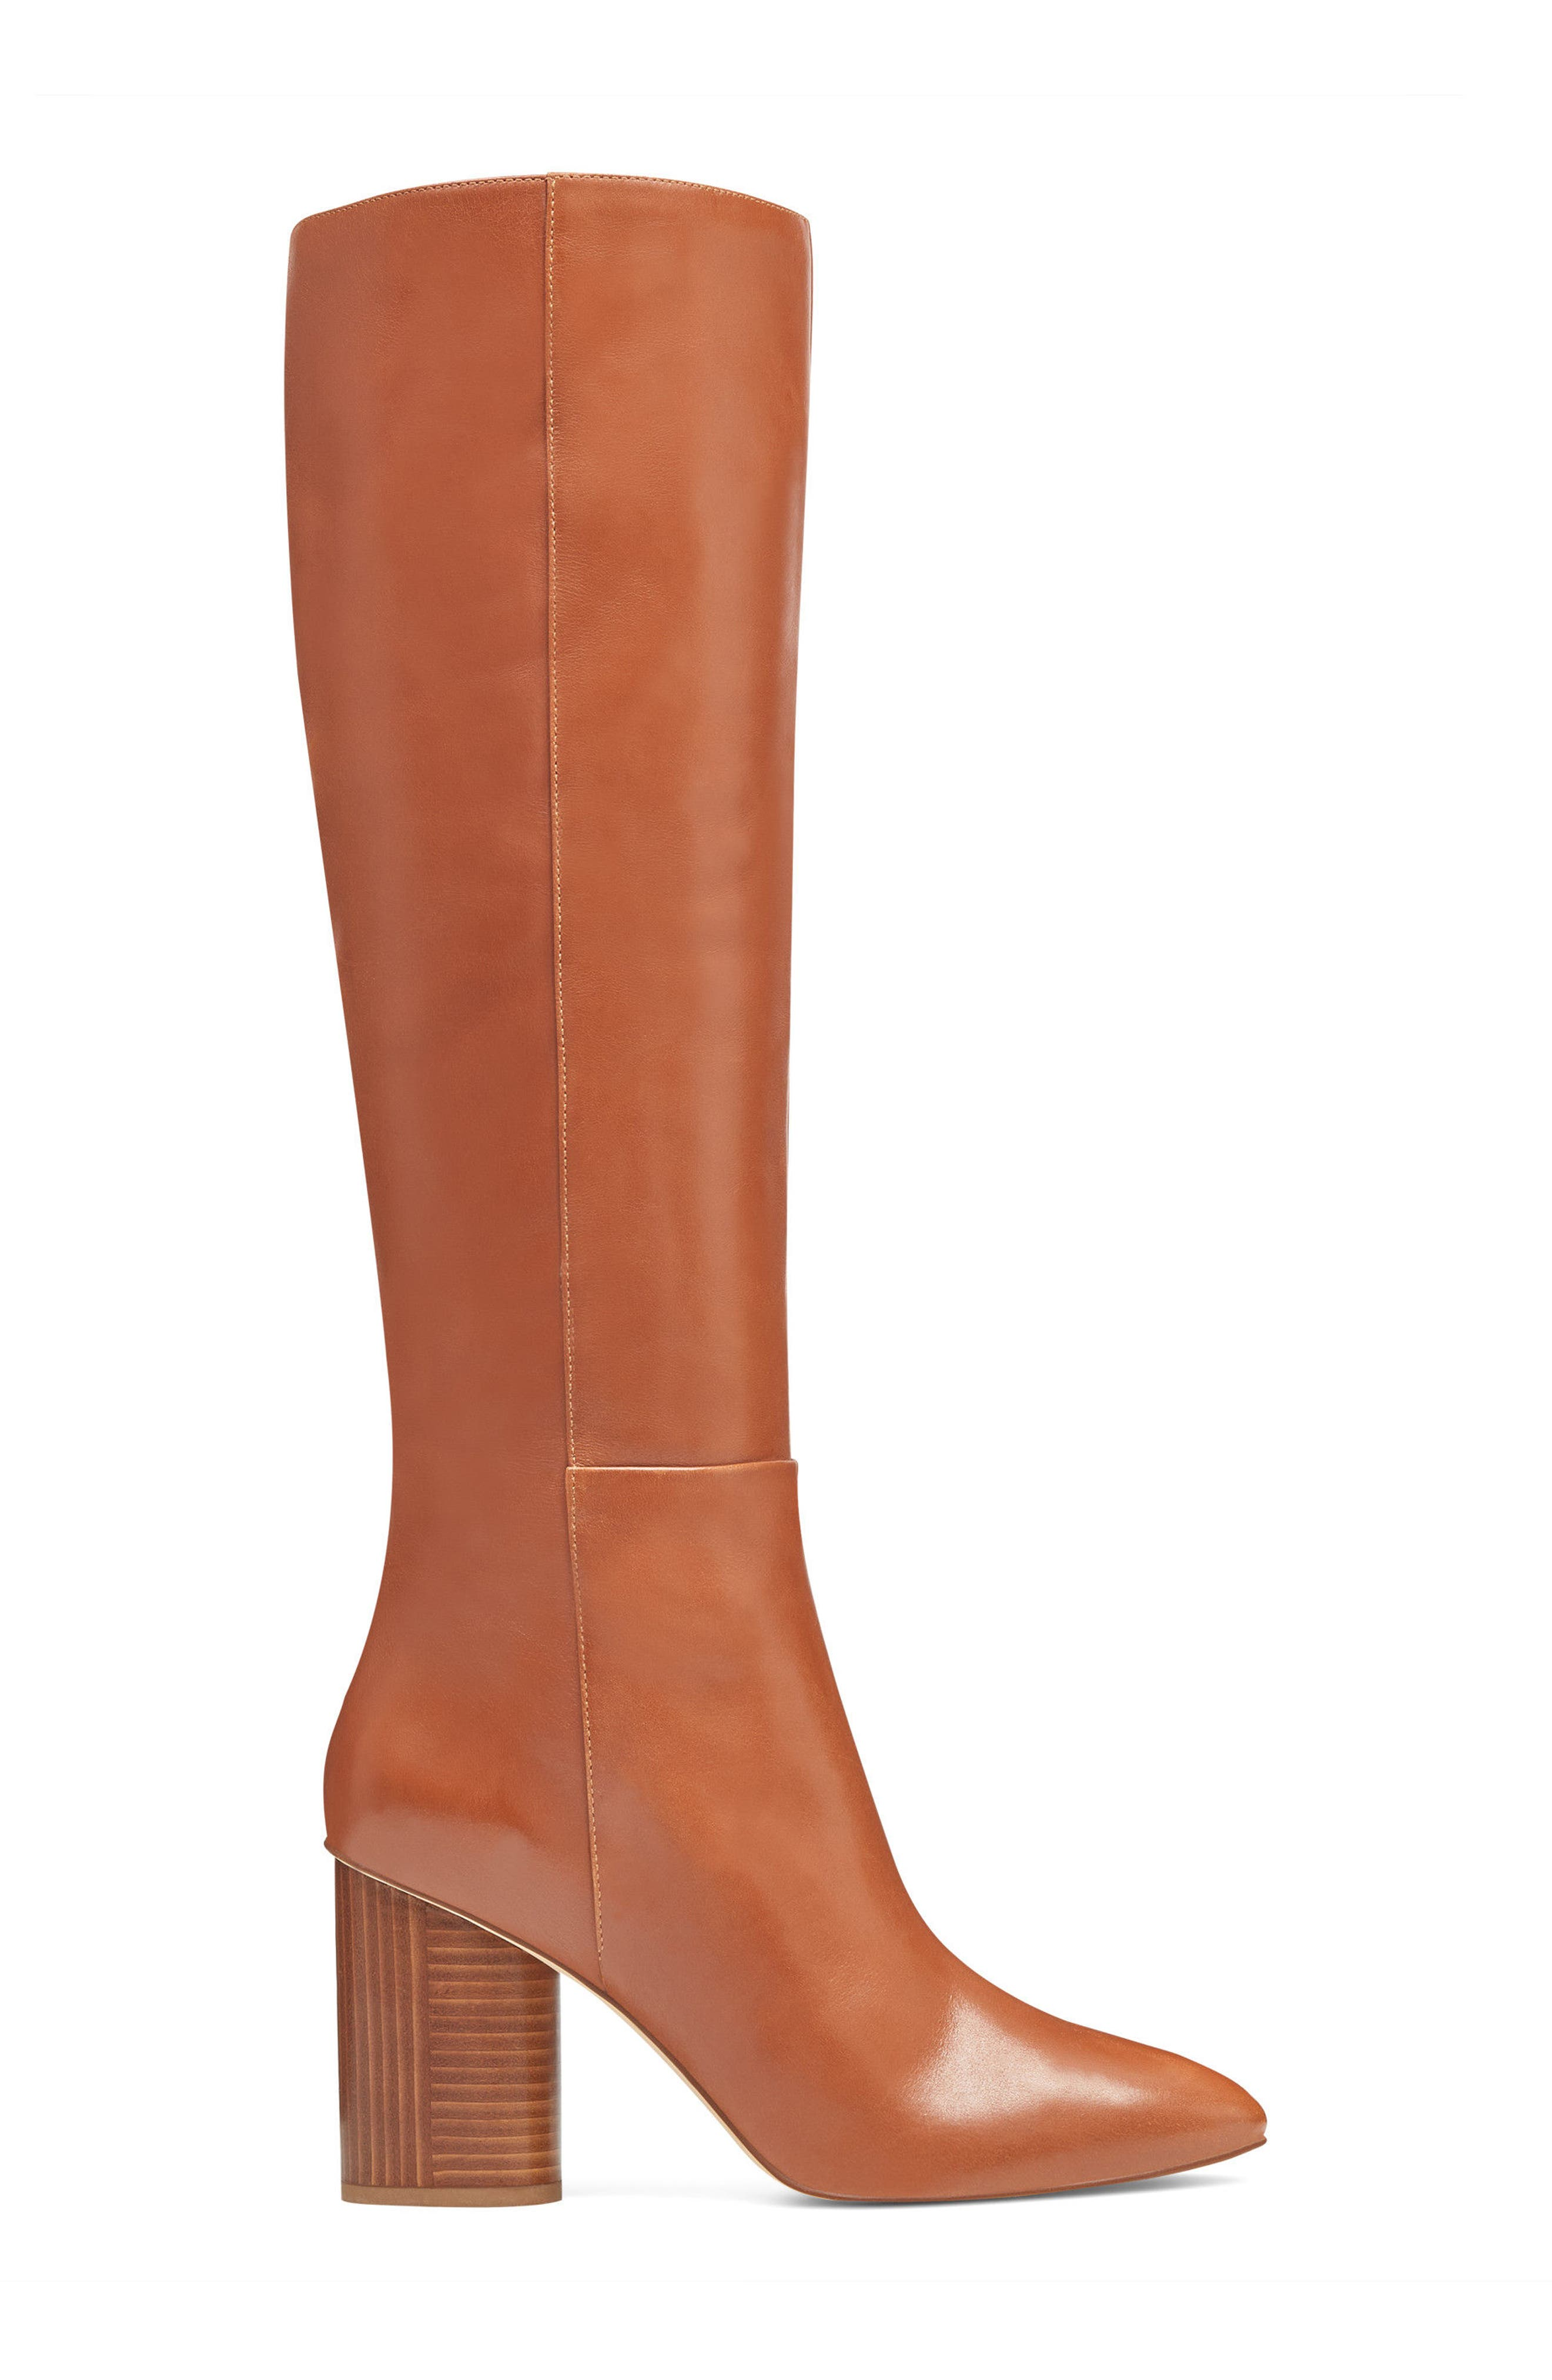 Christie Knee High Boot,                             Alternate thumbnail 3, color,                             Dark Natural Leather